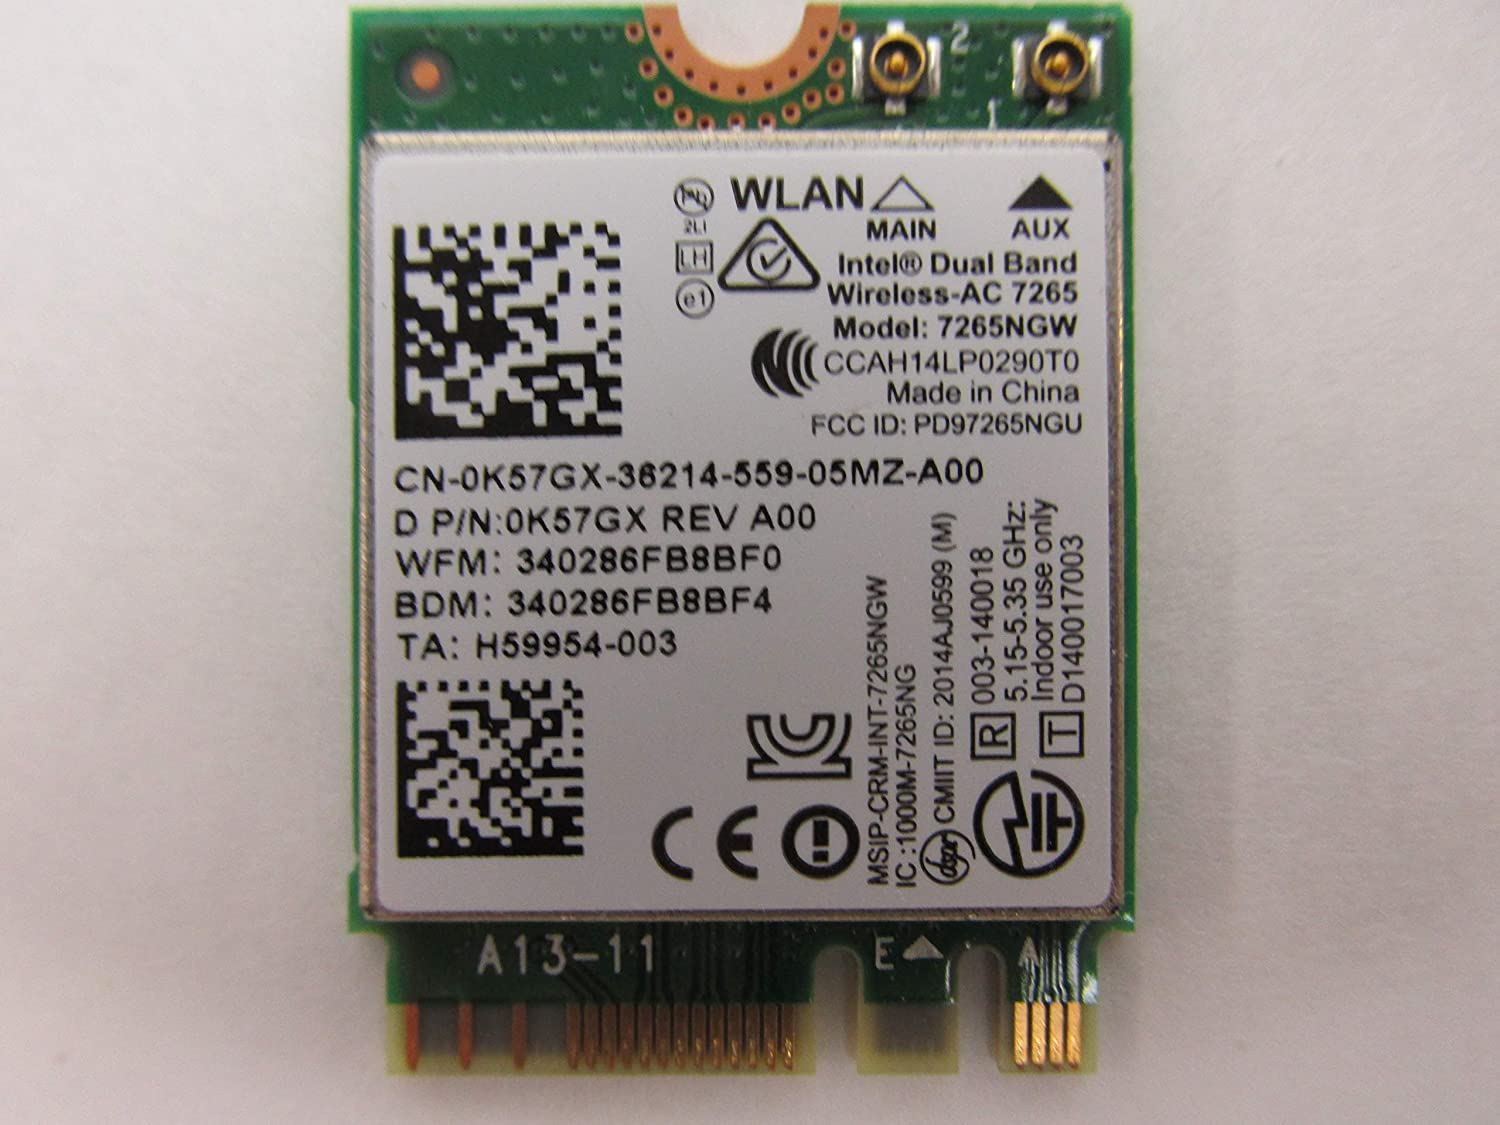 Dell M.2 K57GX Bluetooth WLAN 802.11ac Wireless Card 7265NGW